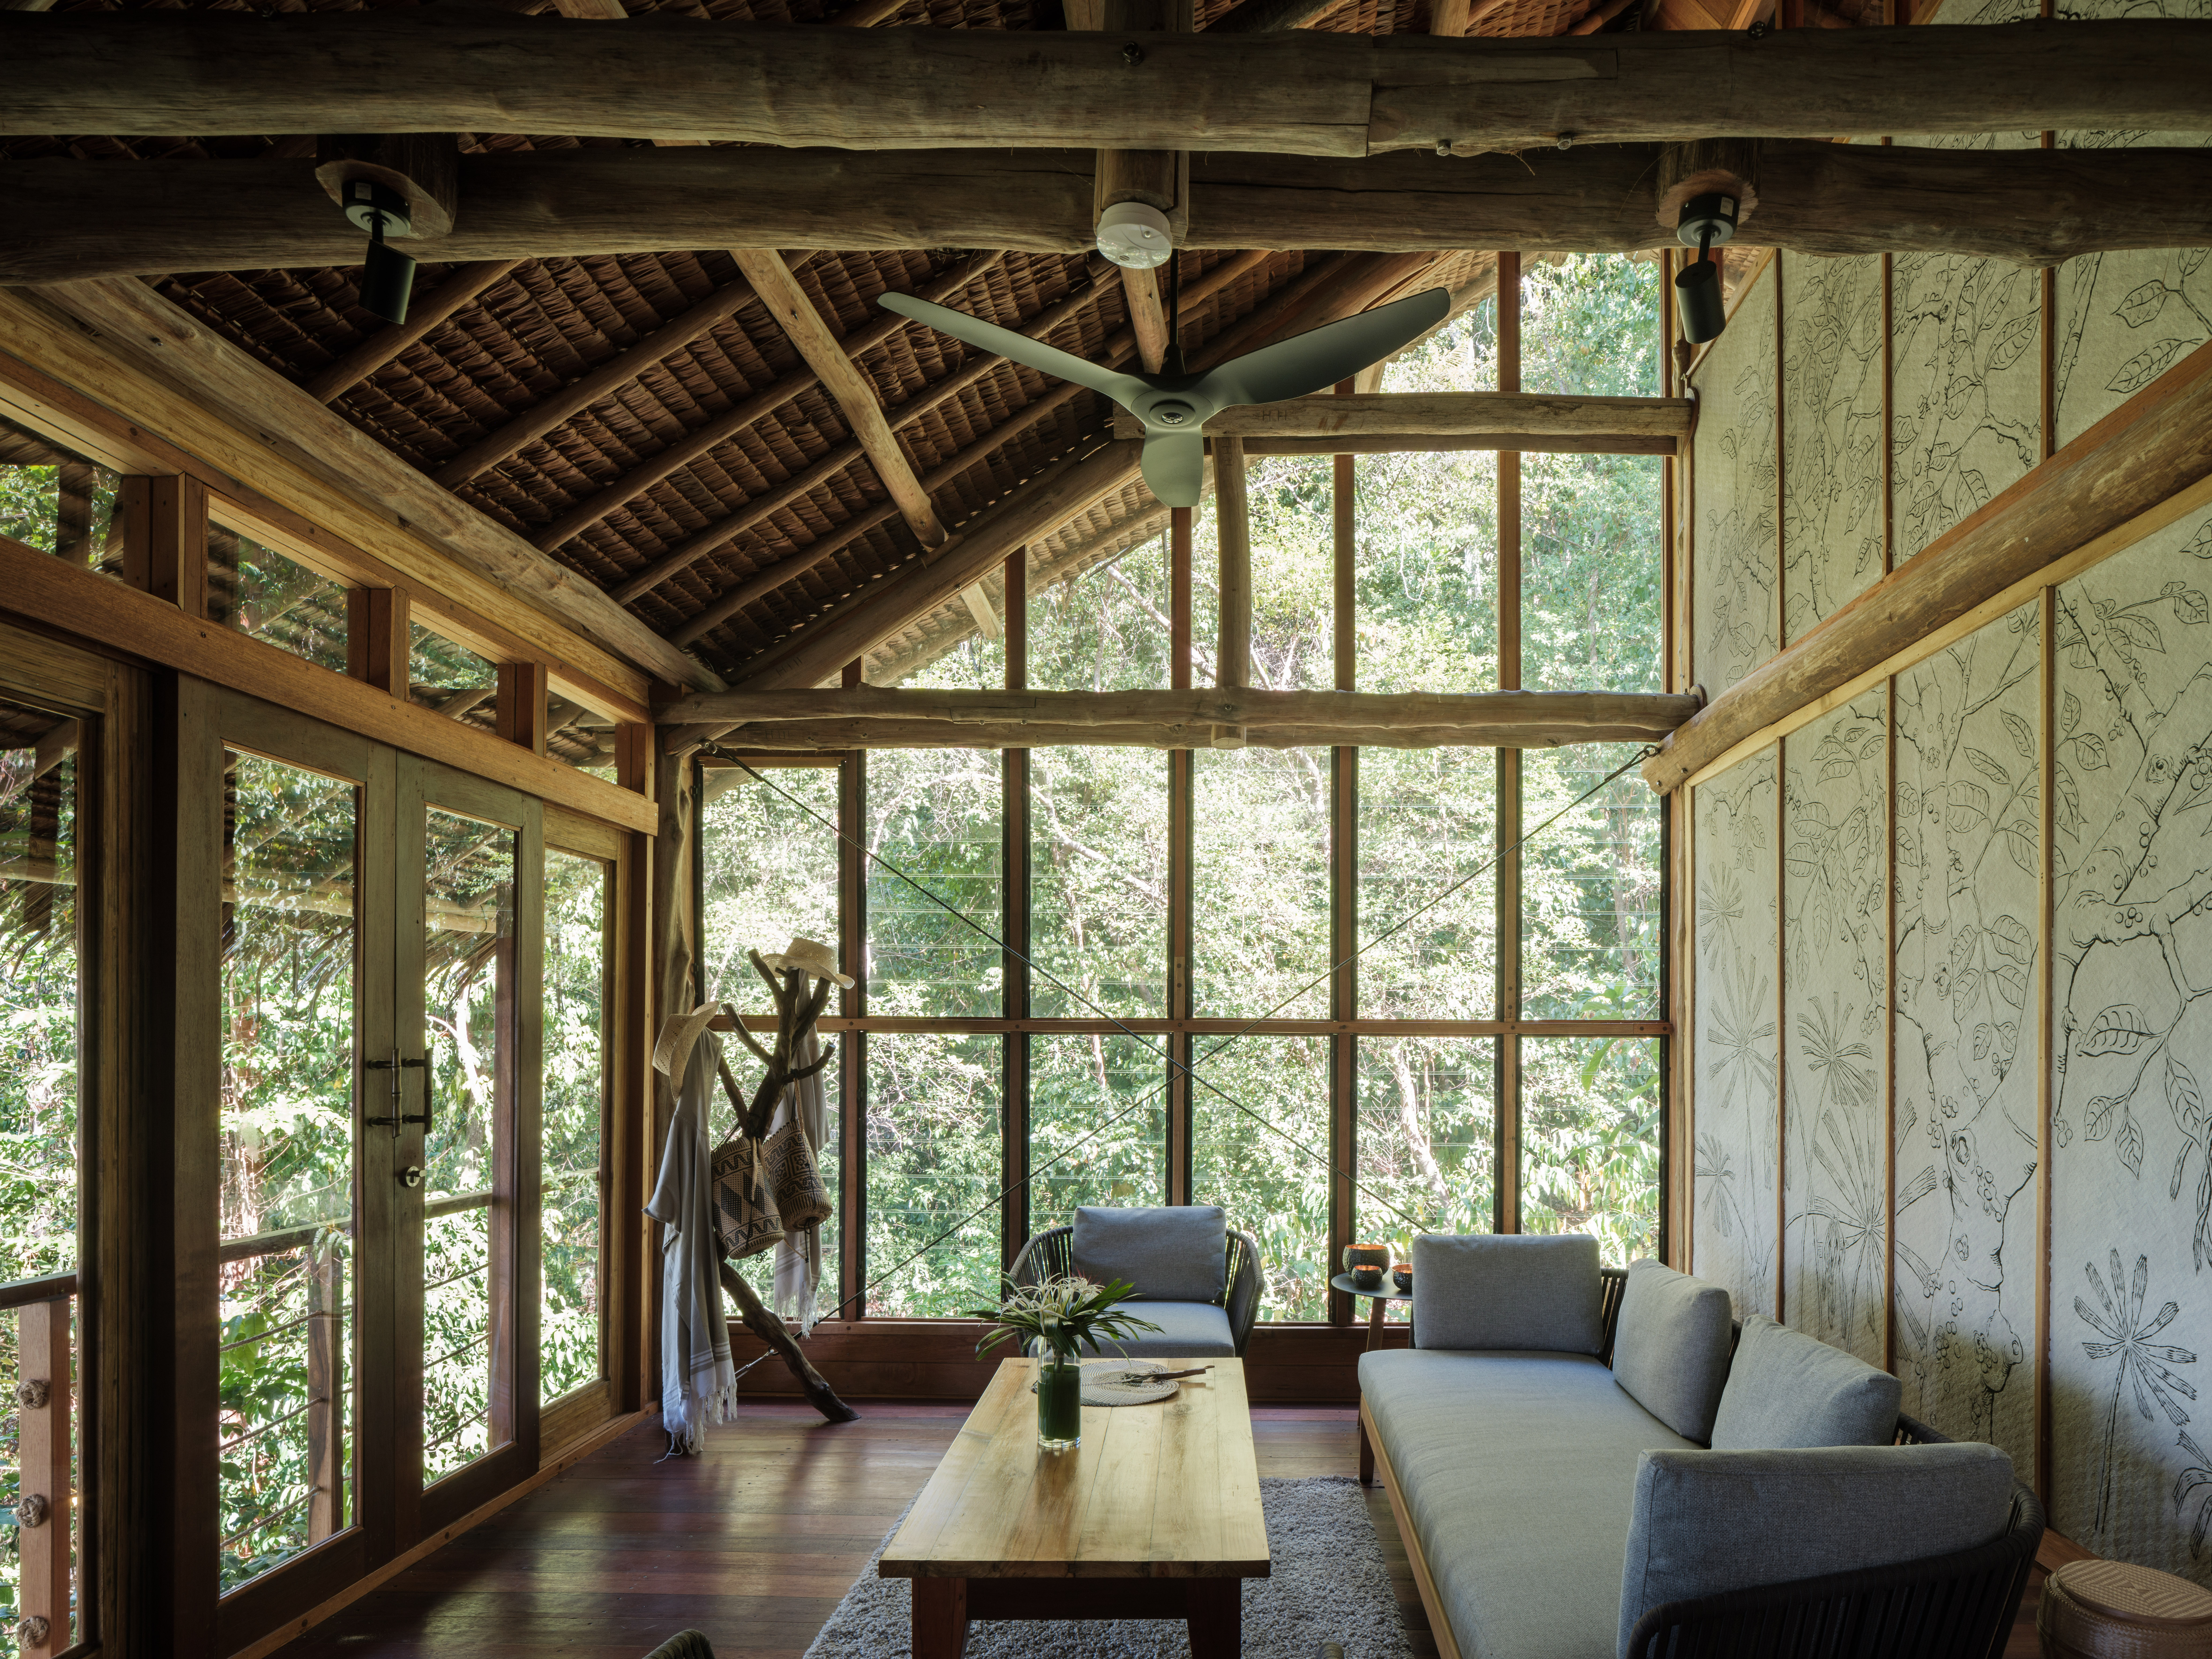 glass_window_foliage_view_on_living_lounge_with_straw_hat_beach_robes_wicker_bag_hanging_tree_branch_hooks_jungle_lodge